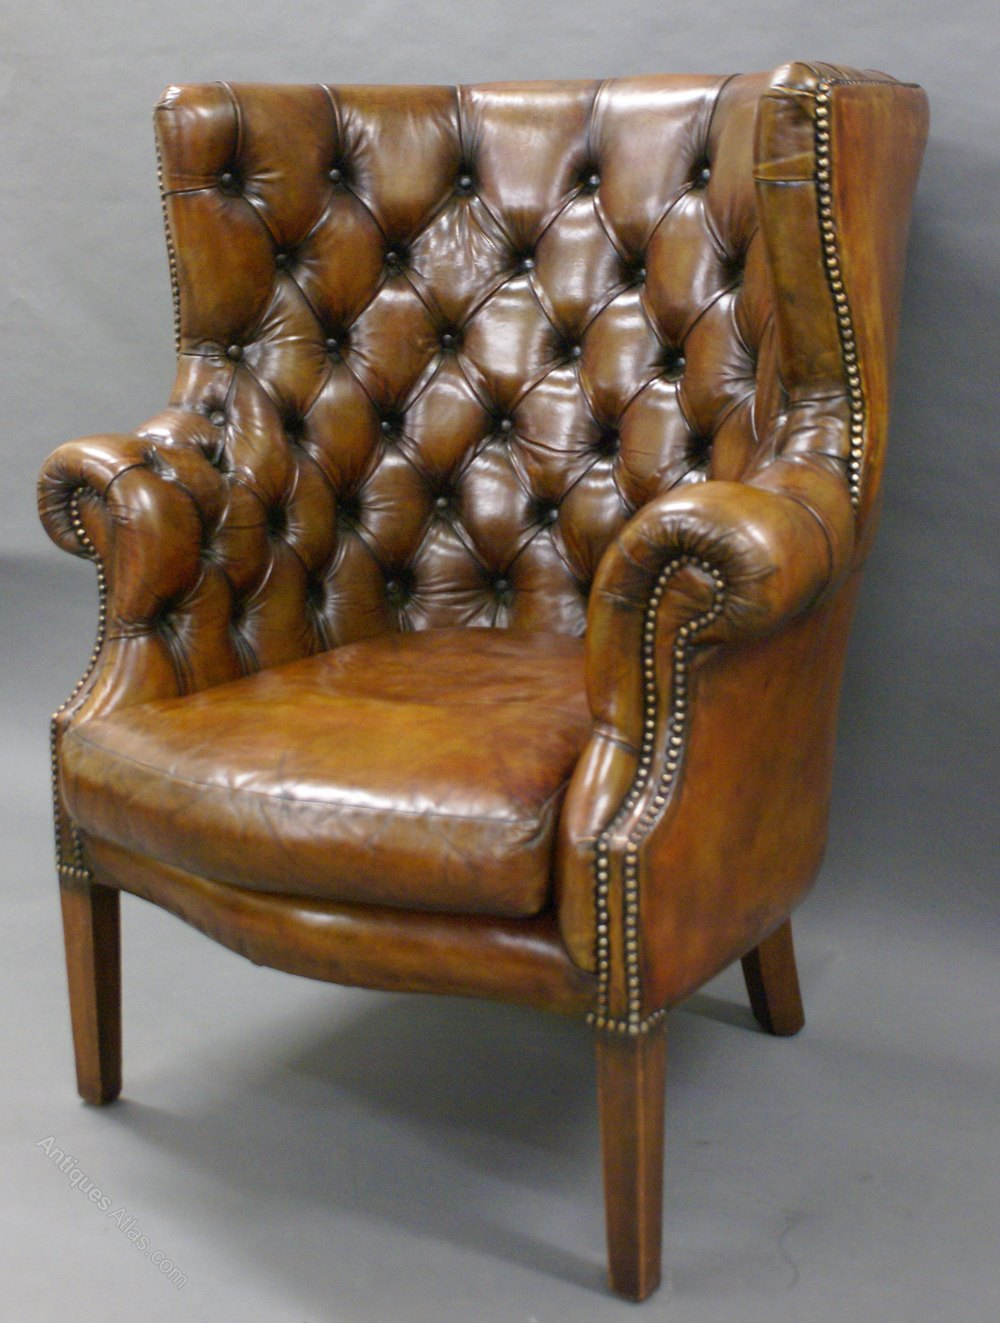 ... chair Antique Barrel Back ArmChairs ... - A Georgian Revival Leather Upholstered Barrel Back Chair